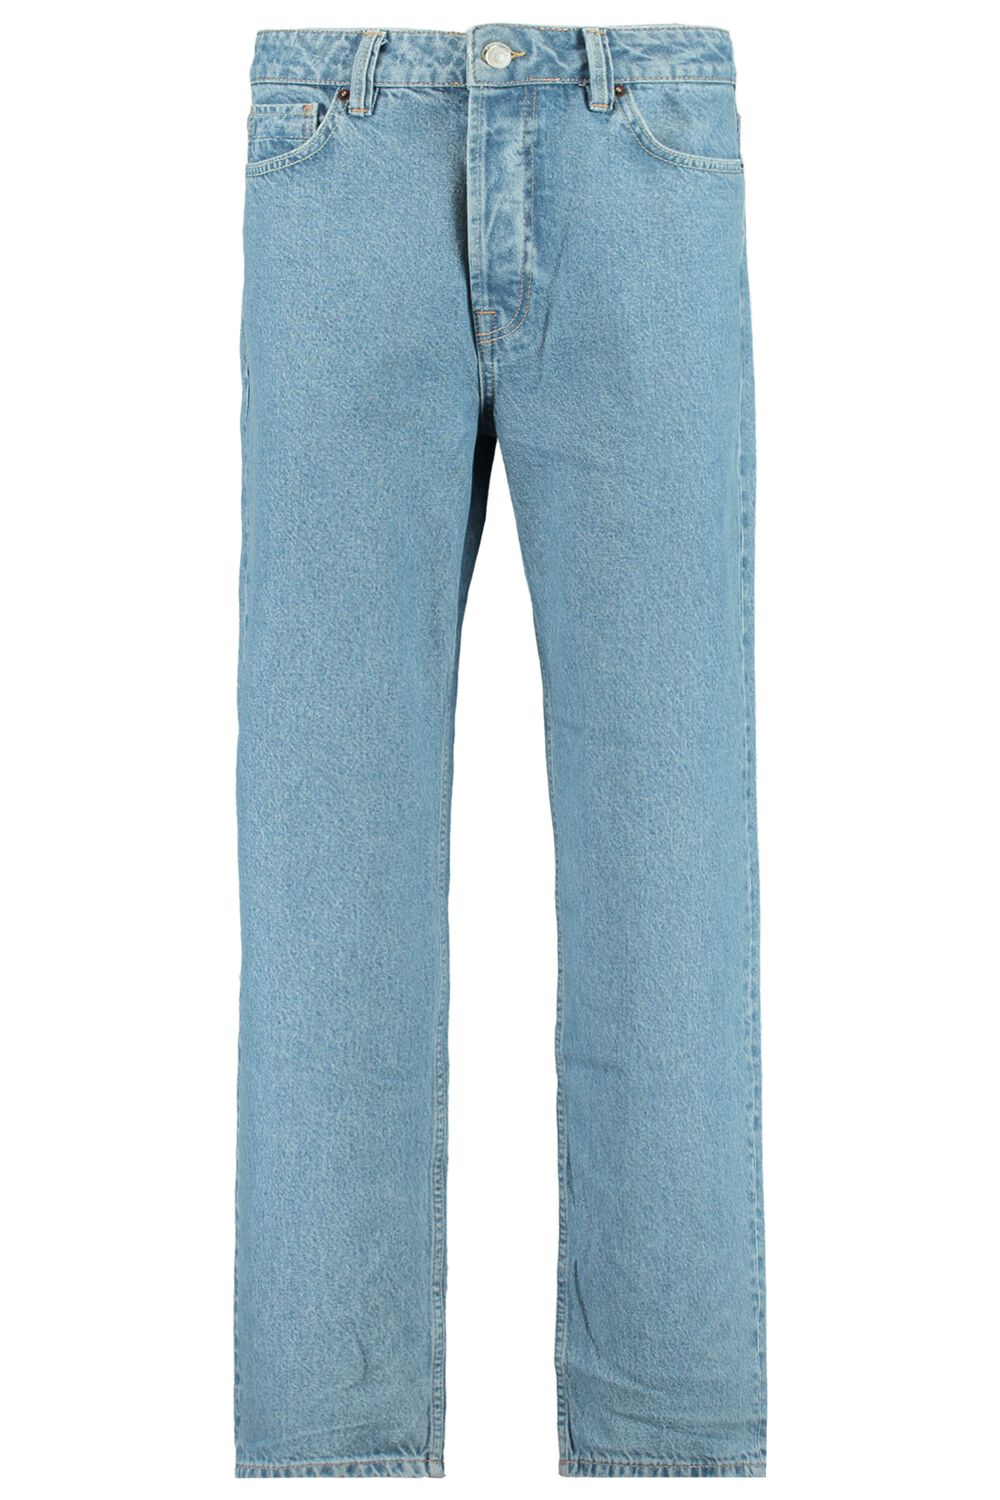 Jeans Loose fit Blauw